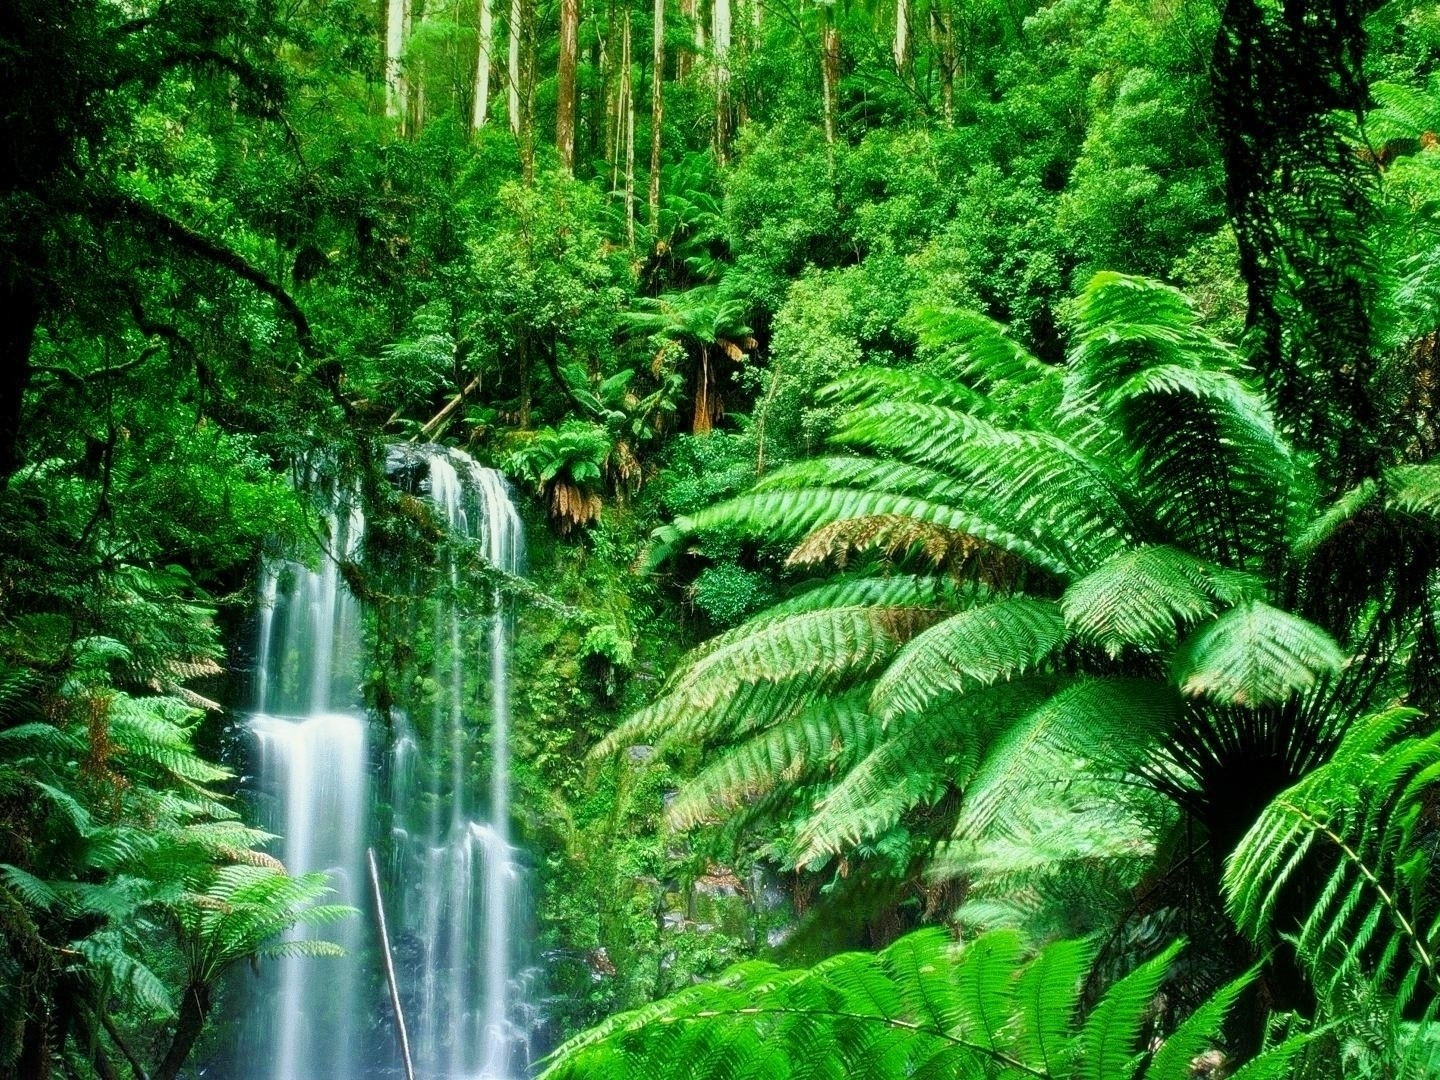 Week 2 of 6 week unit of English planning for Year 3 or 4- The Rainforest